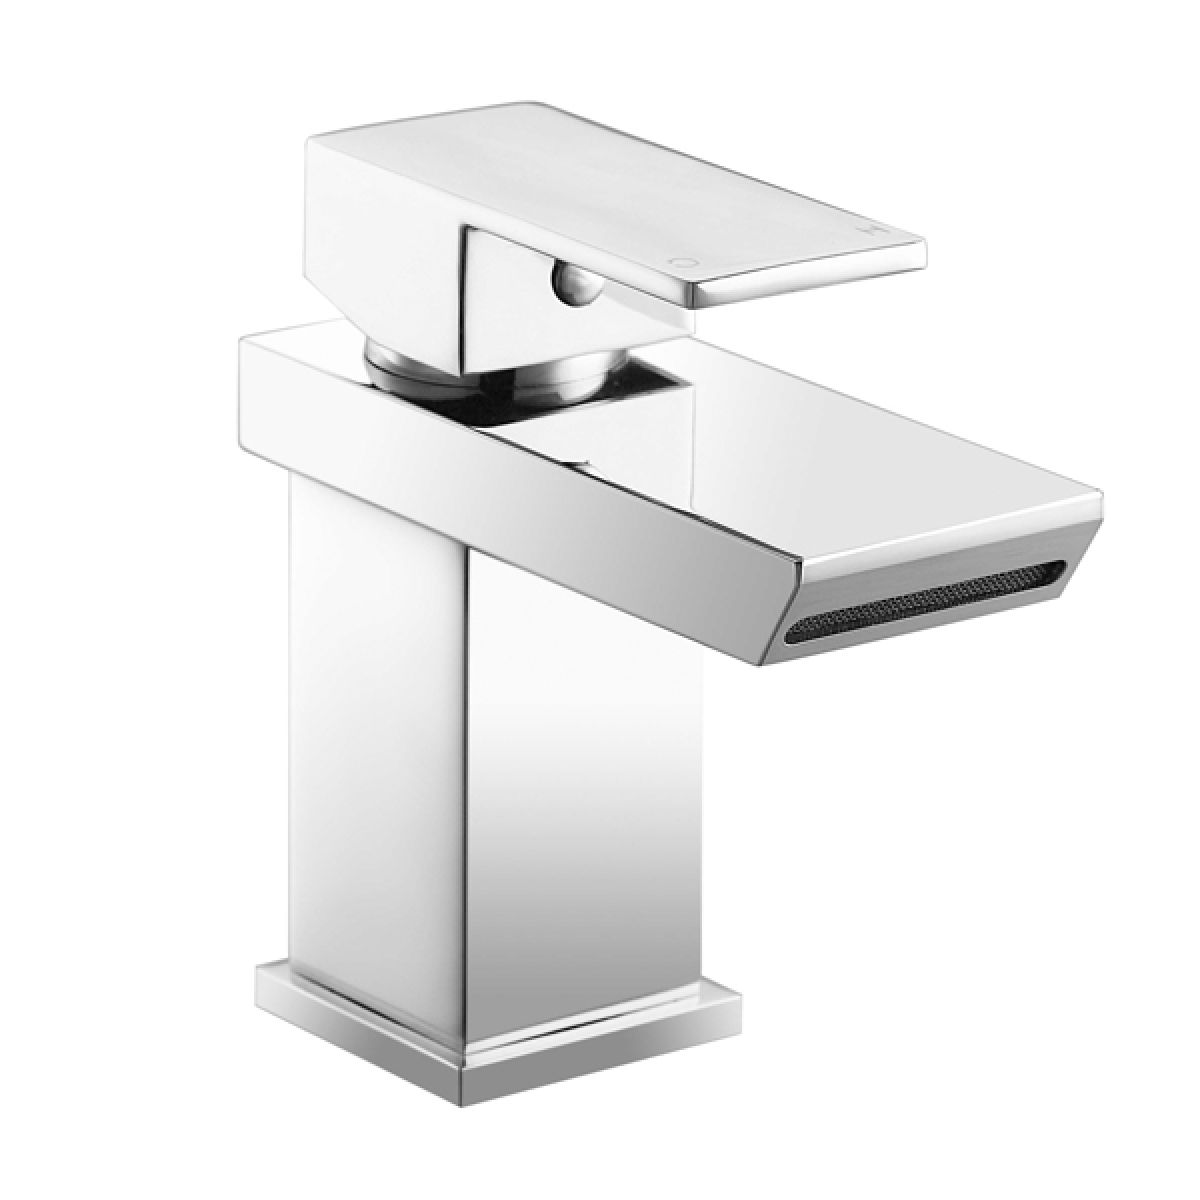 Frontline Sleek Mono Basin Mixer Tap with Click Clack Waste